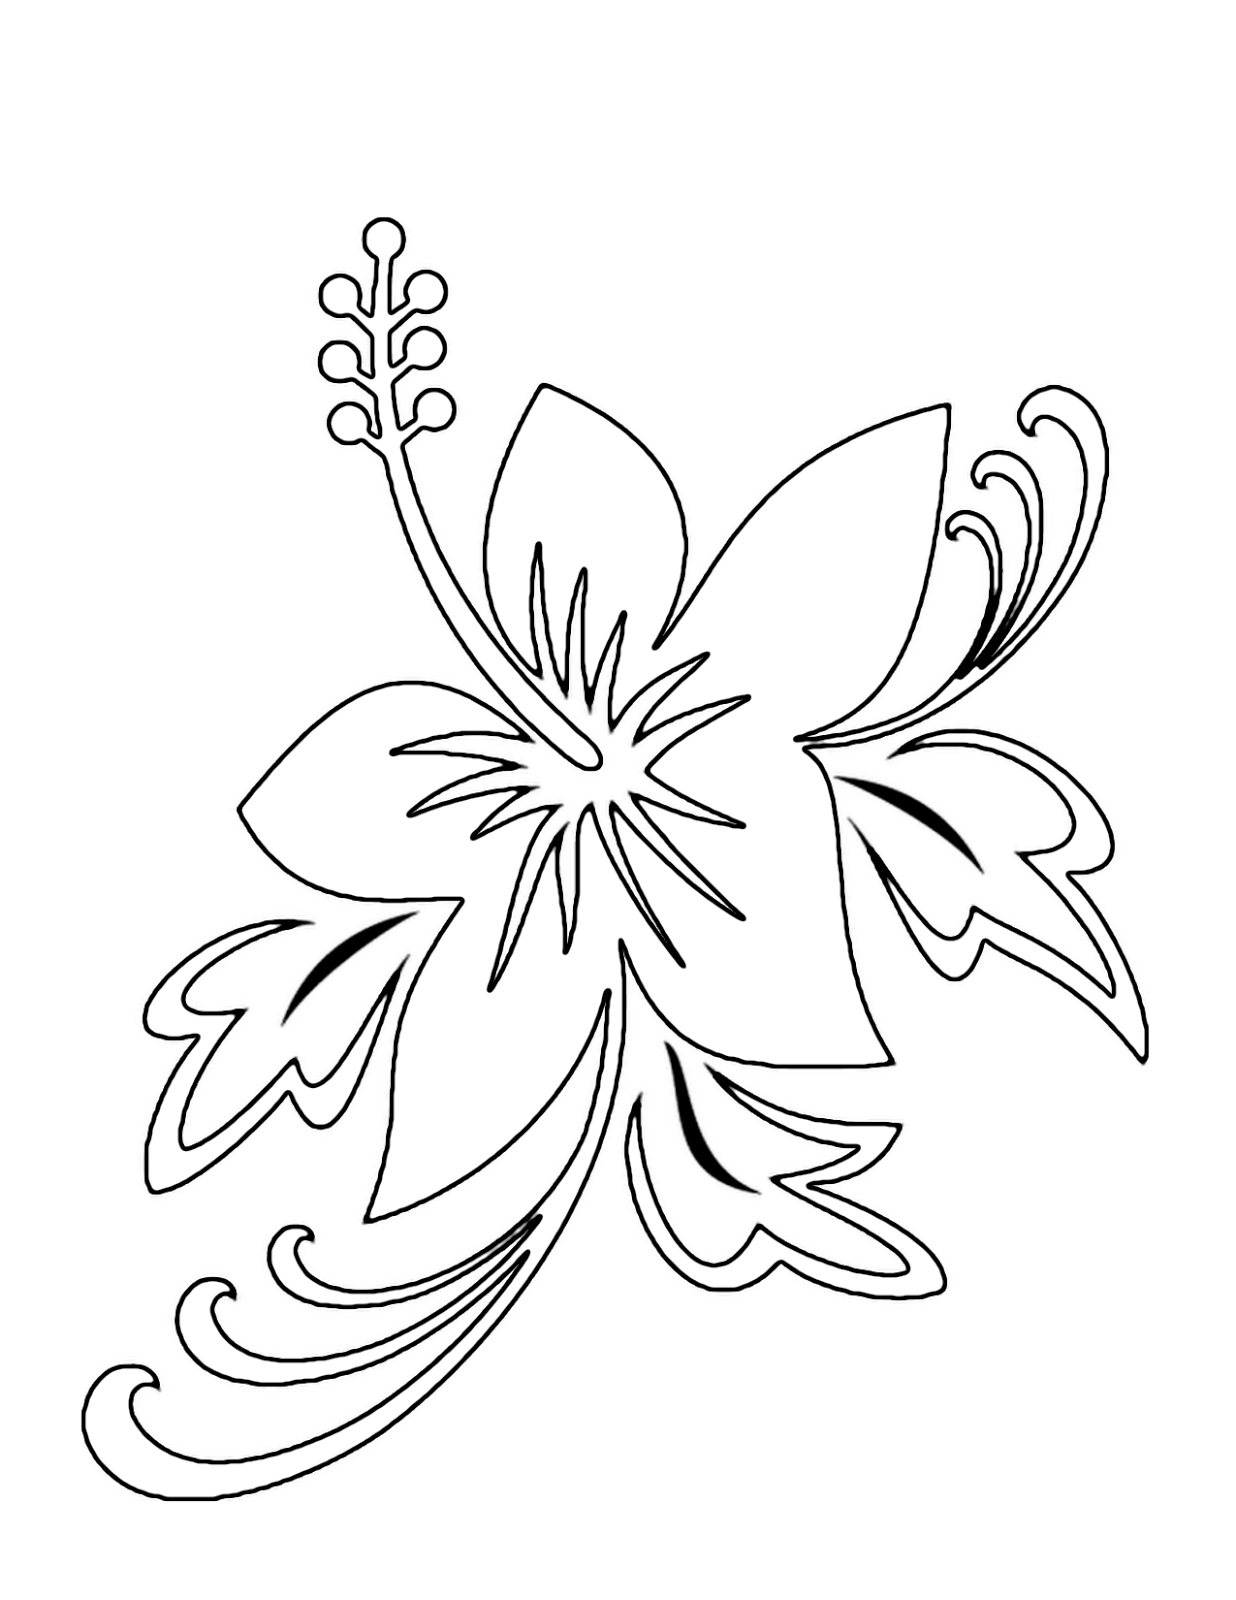 1236x1600 Flower Drawings To Color 33 Flower Color Page, Summer Flower